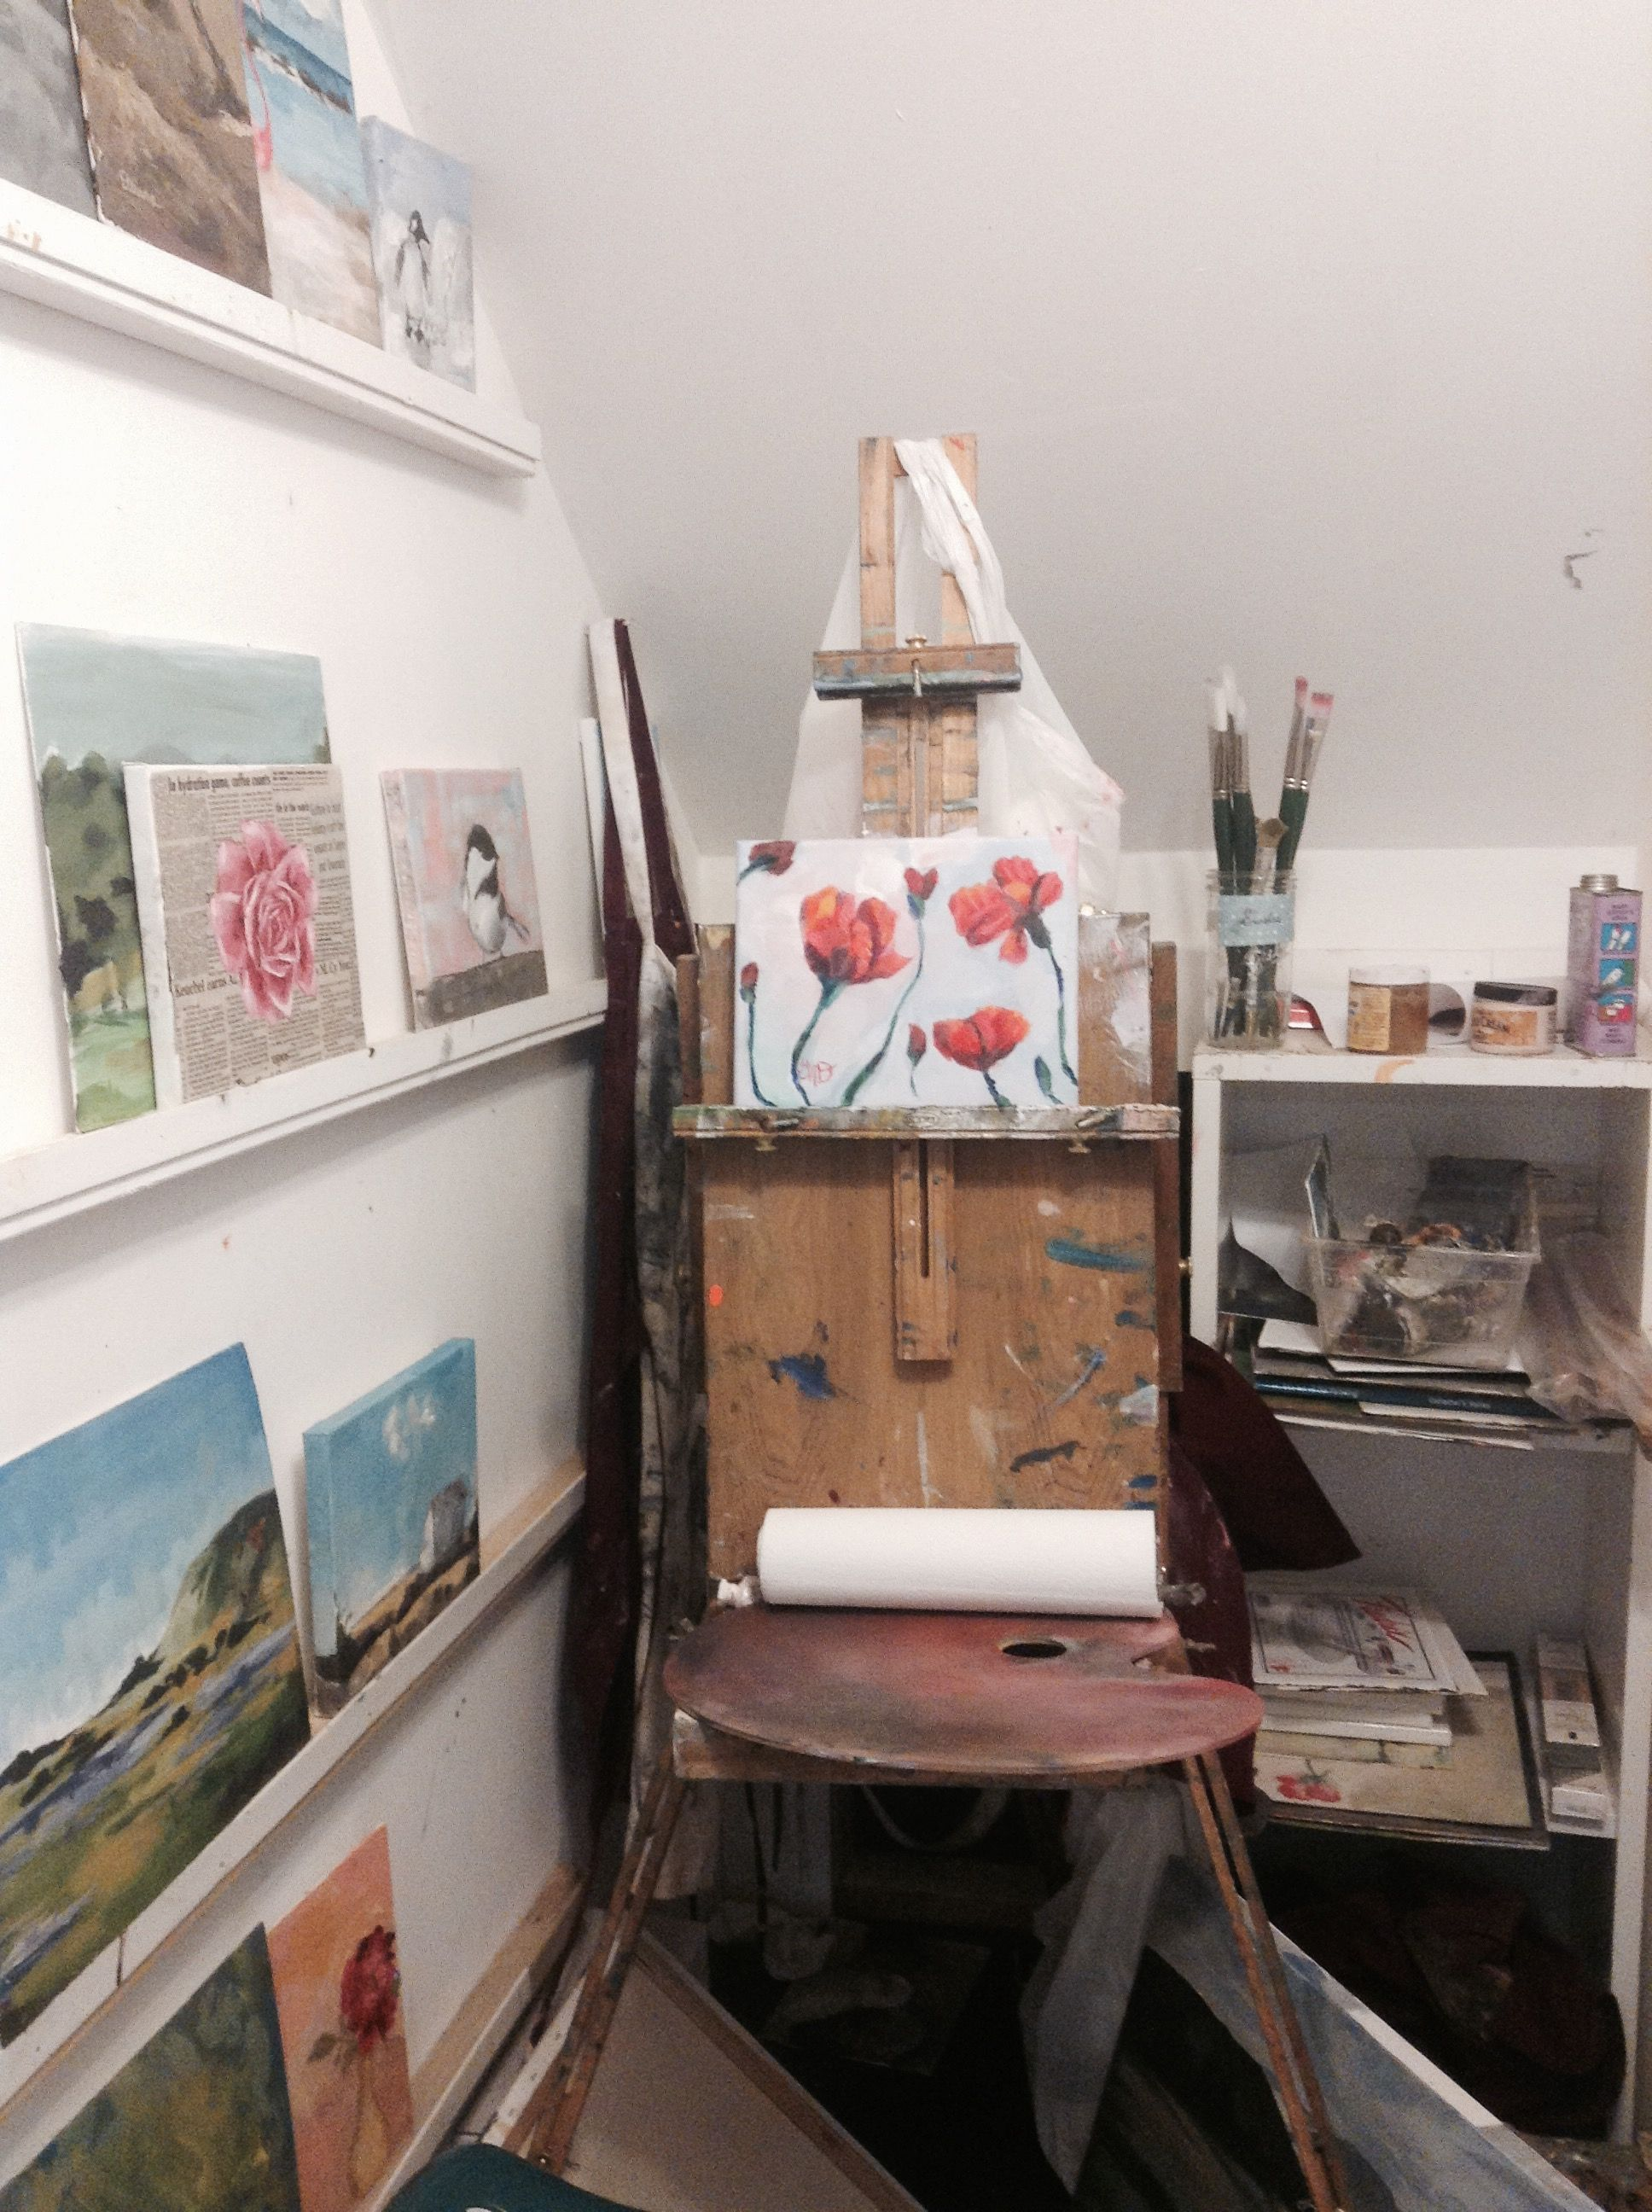 Art studio ideas artists life art organization small studio oil